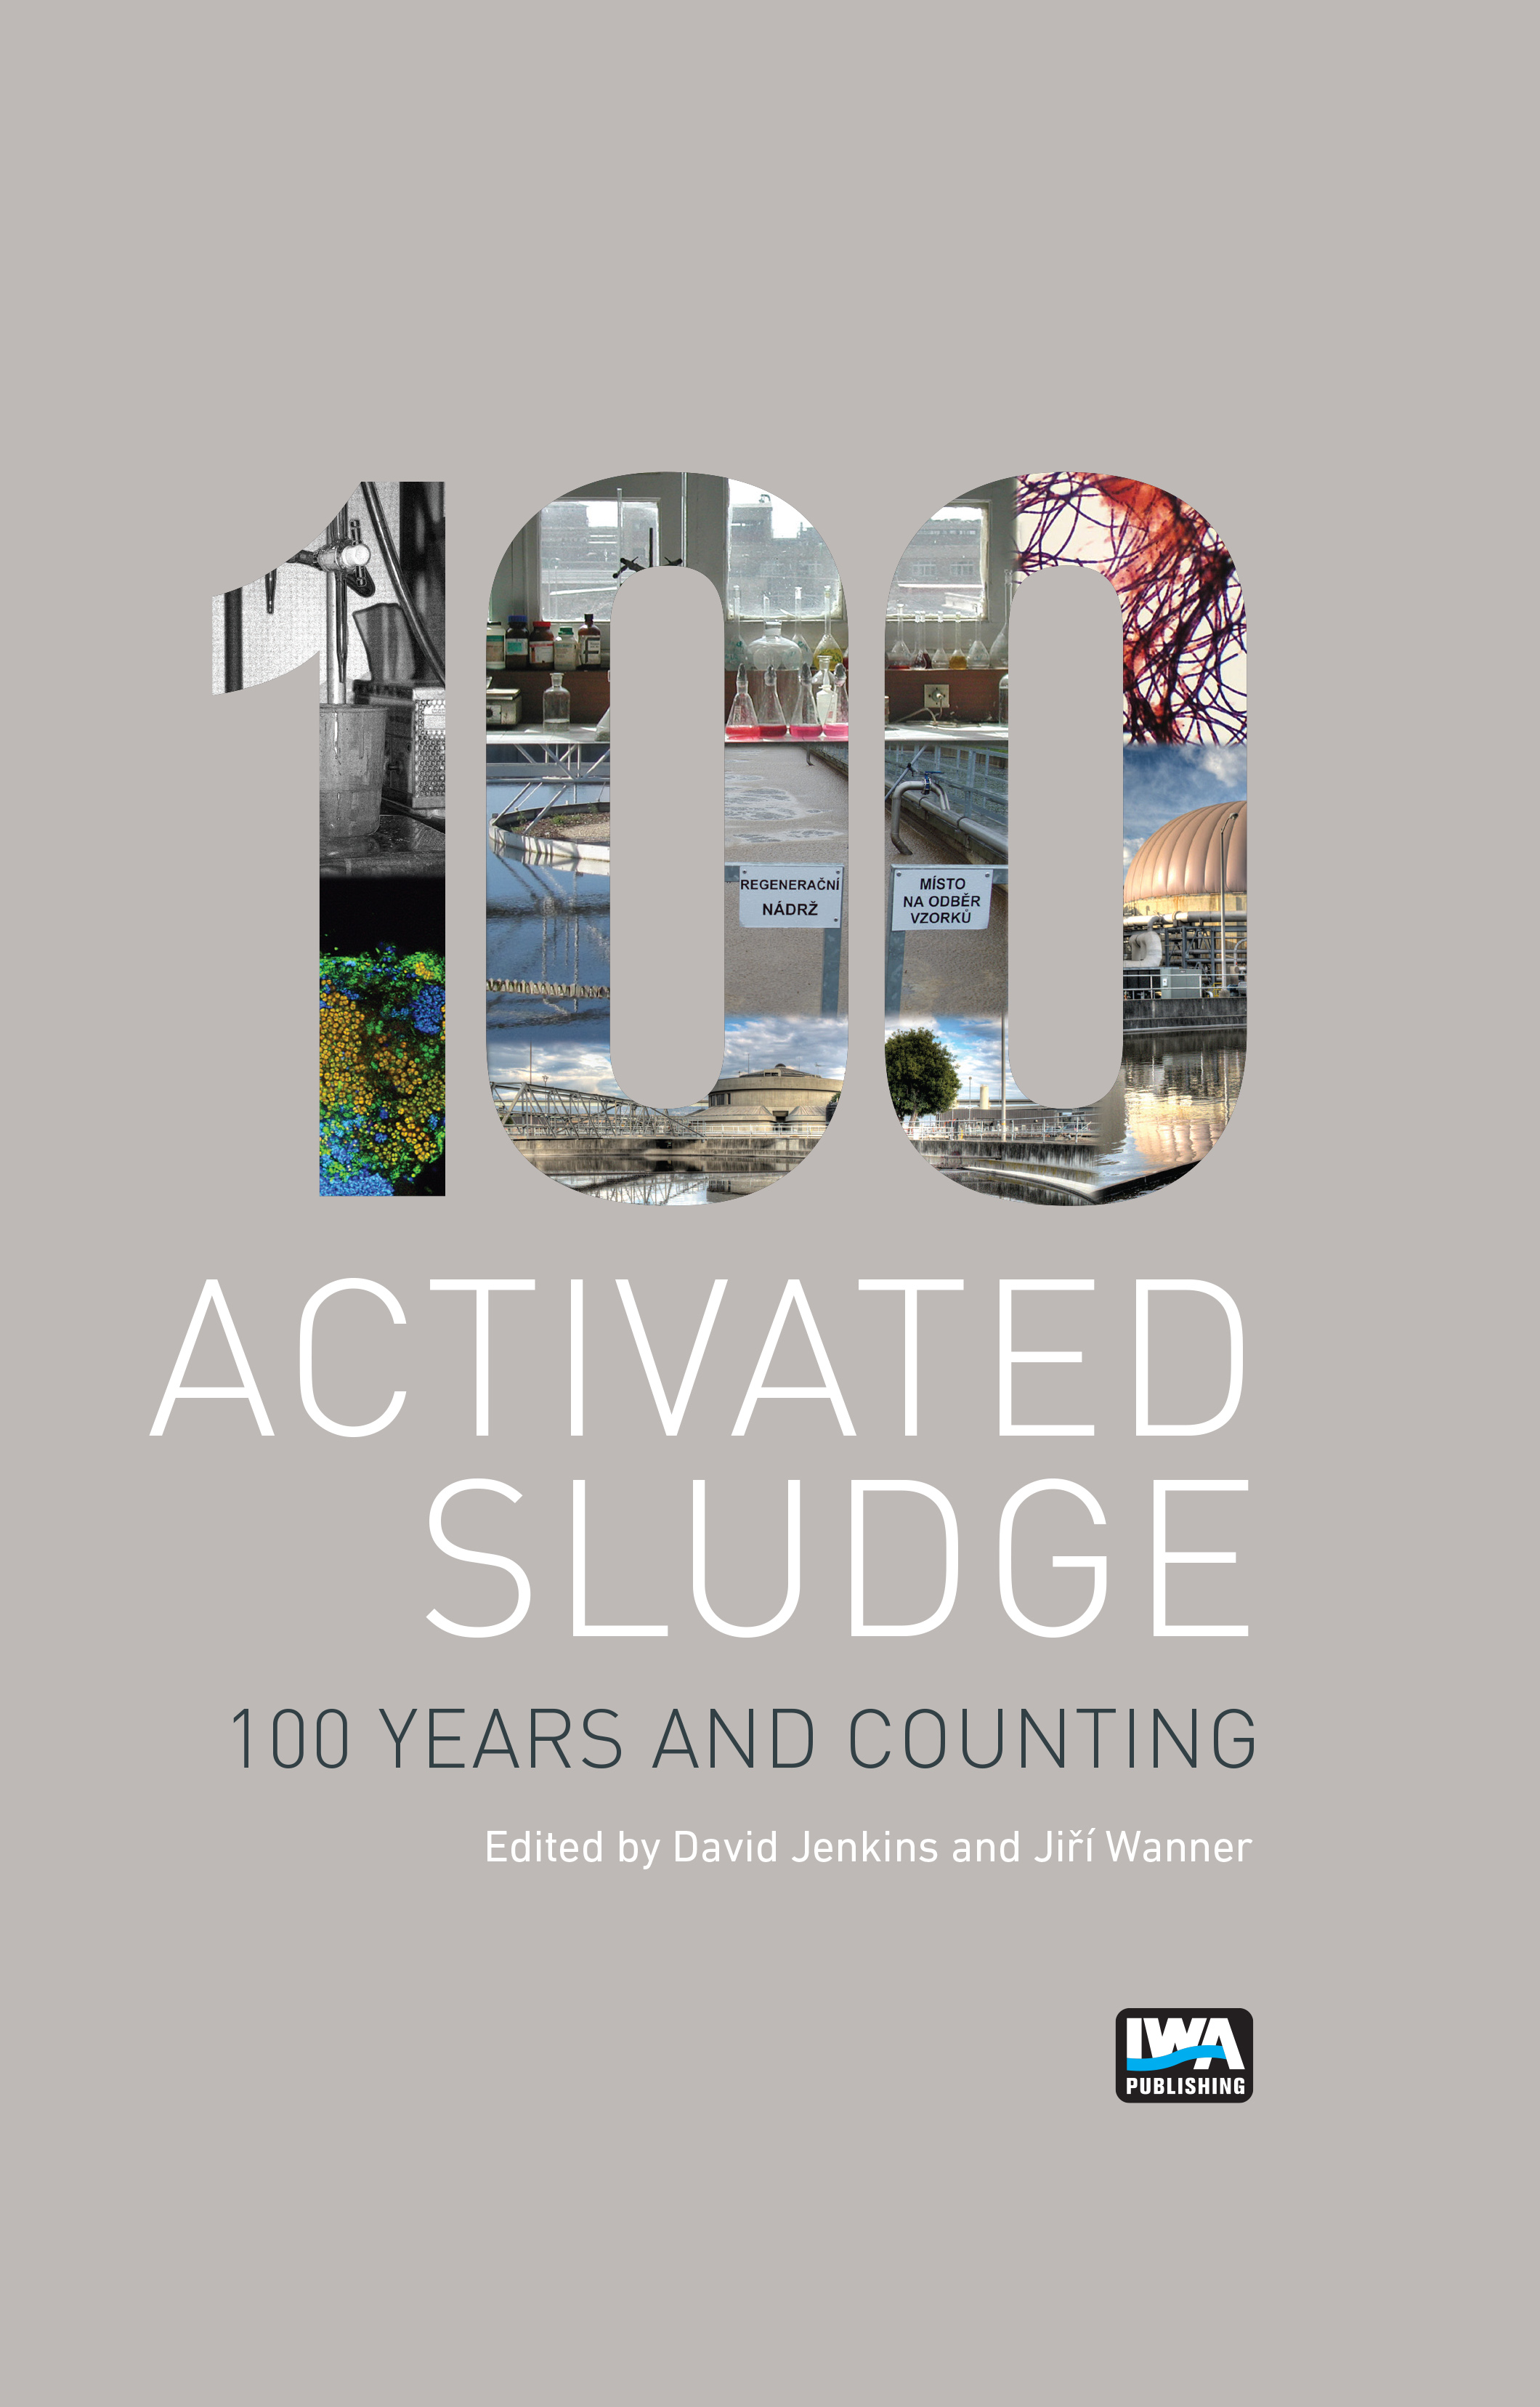 Activated Sludge - 100 Years and Counting